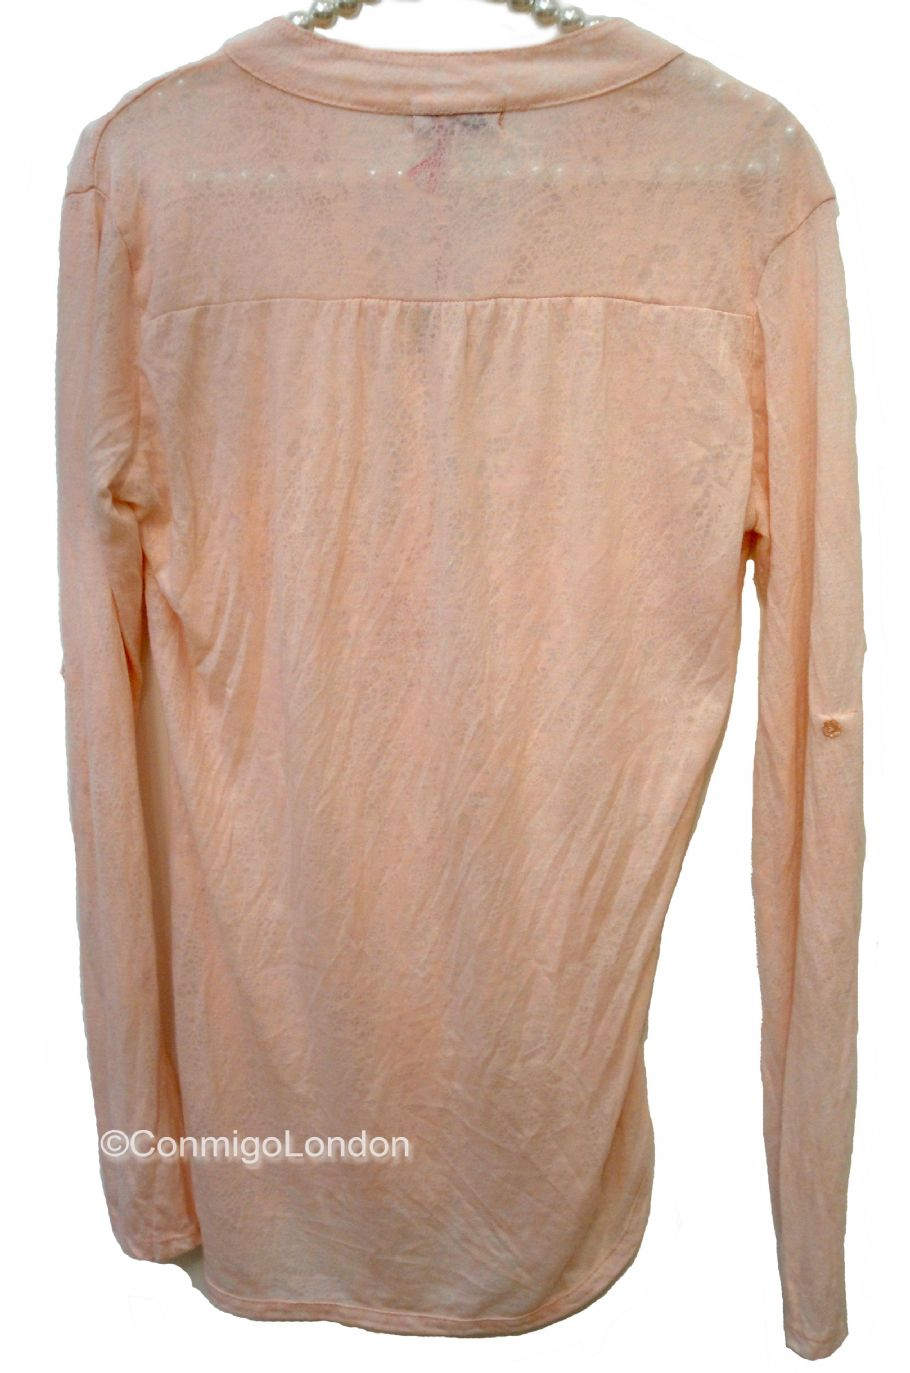 http://www.conmigolondon.co.uk/ekmps/shops/conmigo/images/n-willow-sorty-button-shirt-peach-pink-made-in-italy-colour-pink-size-s-m-%5B2%5D-7022-p.jpg